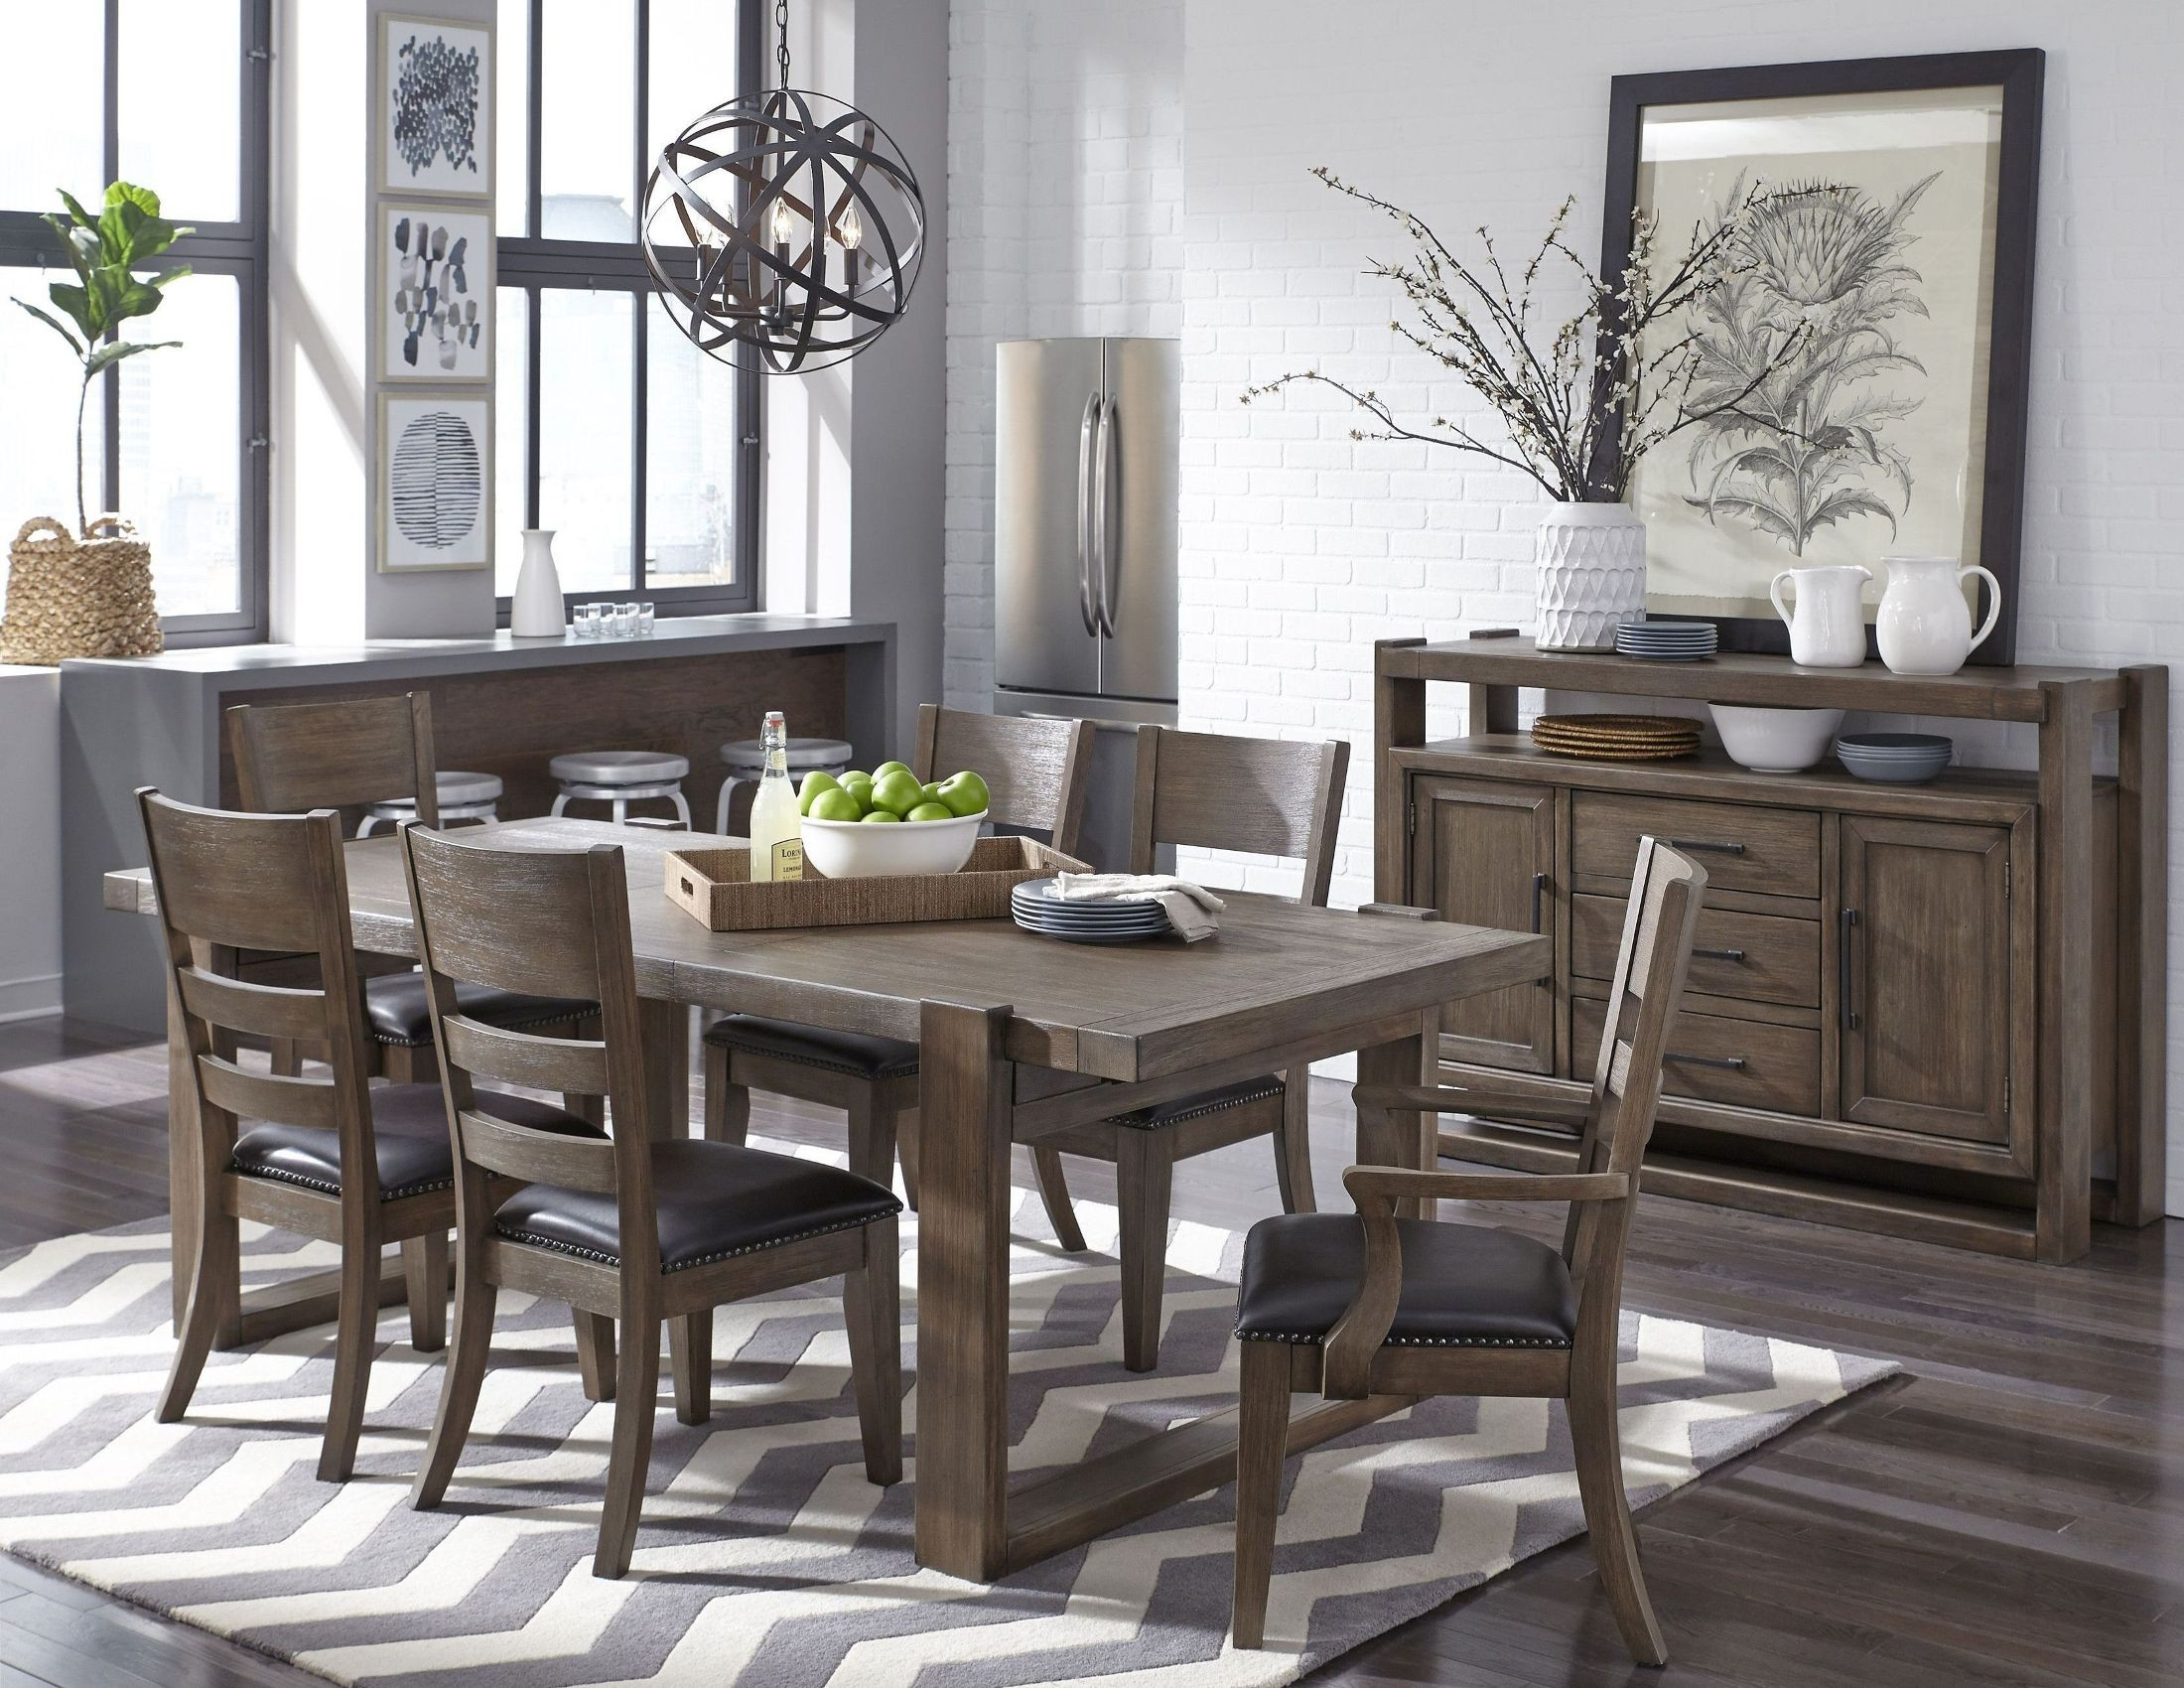 Pulaski dining room sets pulaski dining room 100 acme furniture dresden formal dining room - Pulaski dining room ...